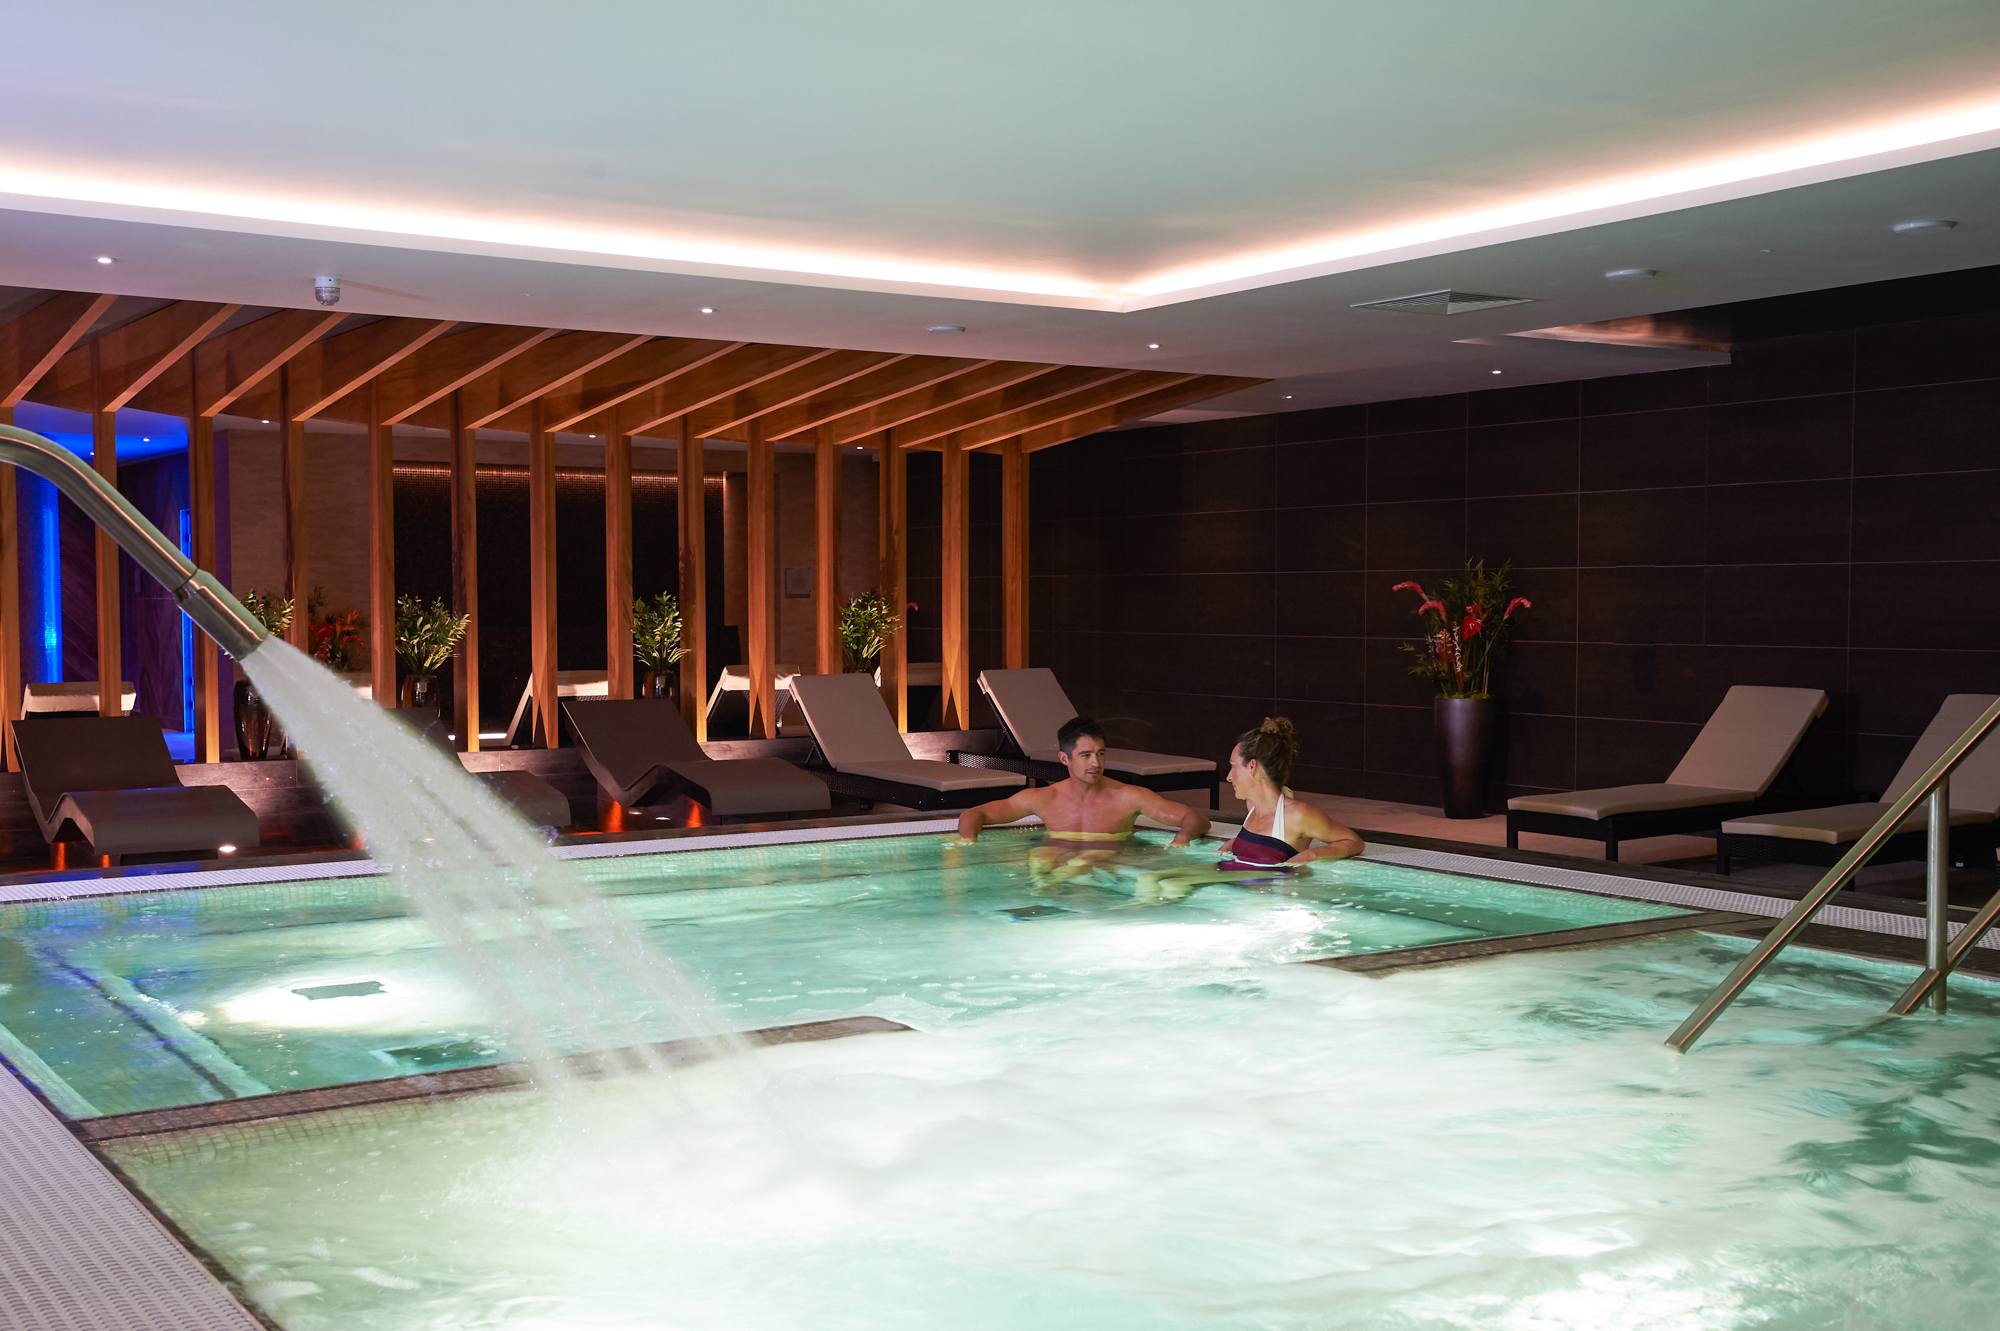 A woman and man reclines blissfully in a spa pool